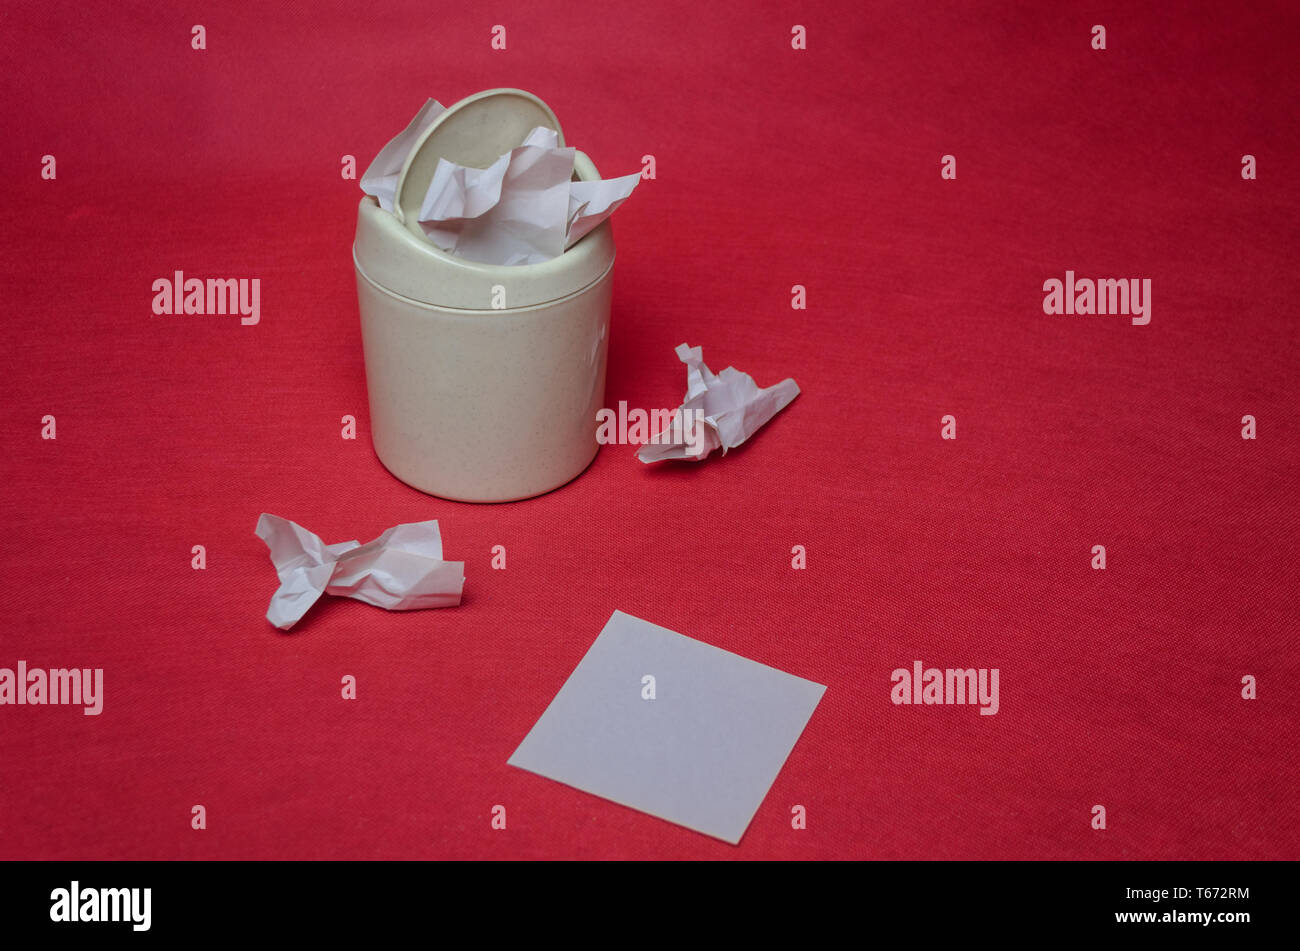 Light trash bin on a red background. Closeup of crumpled sheets of paper. The concept of environmental recycling of paper waste. - Stock Image